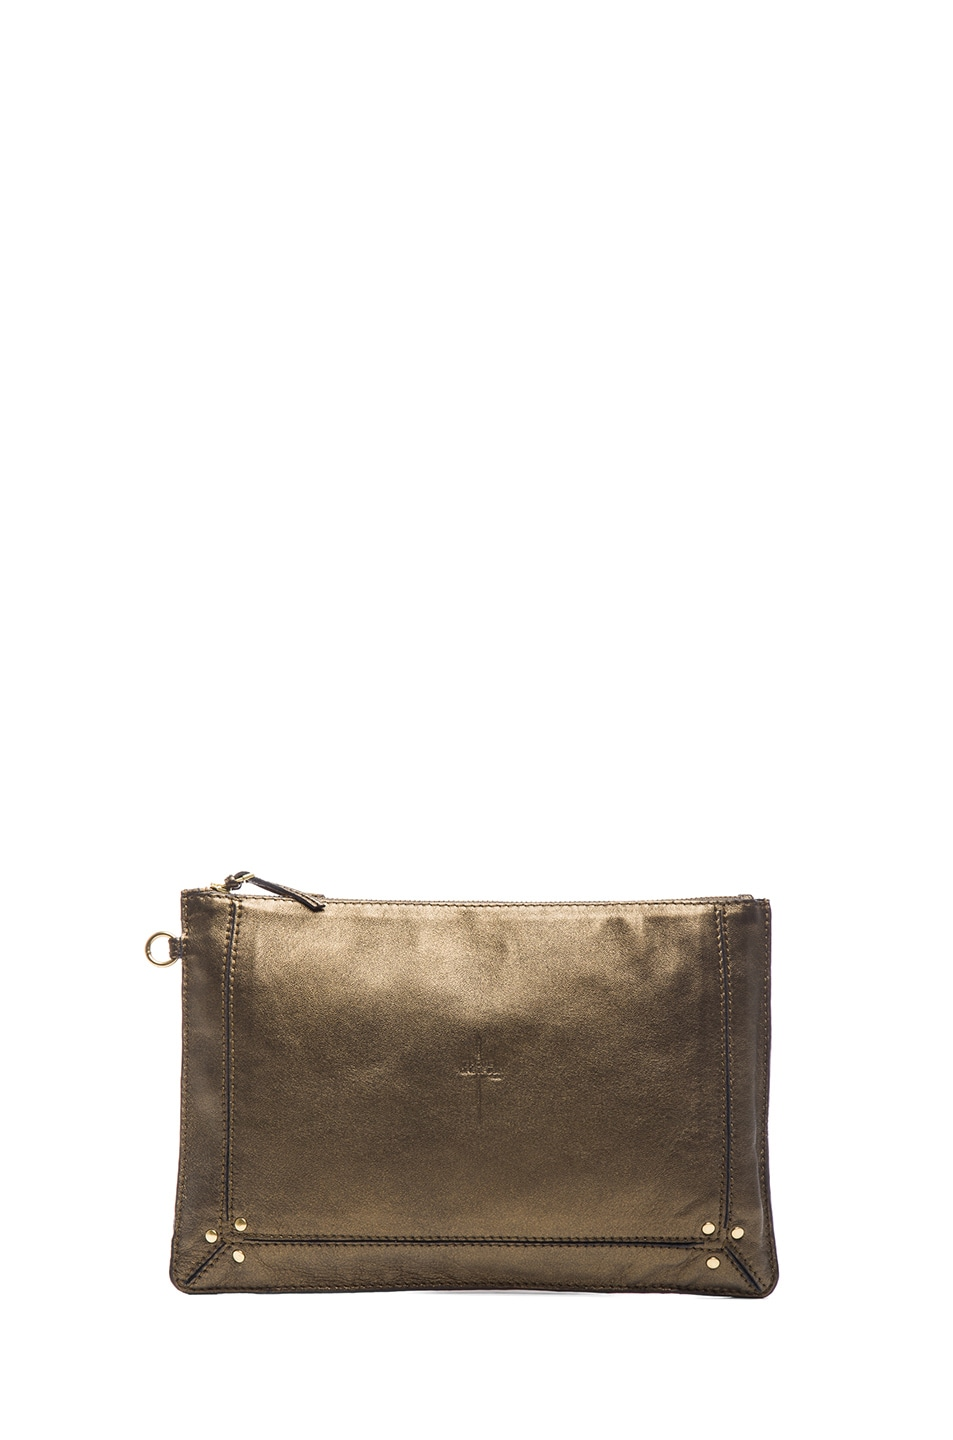 Image 1 of Jerome Dreyfuss Large Popoche Clutch in Modore